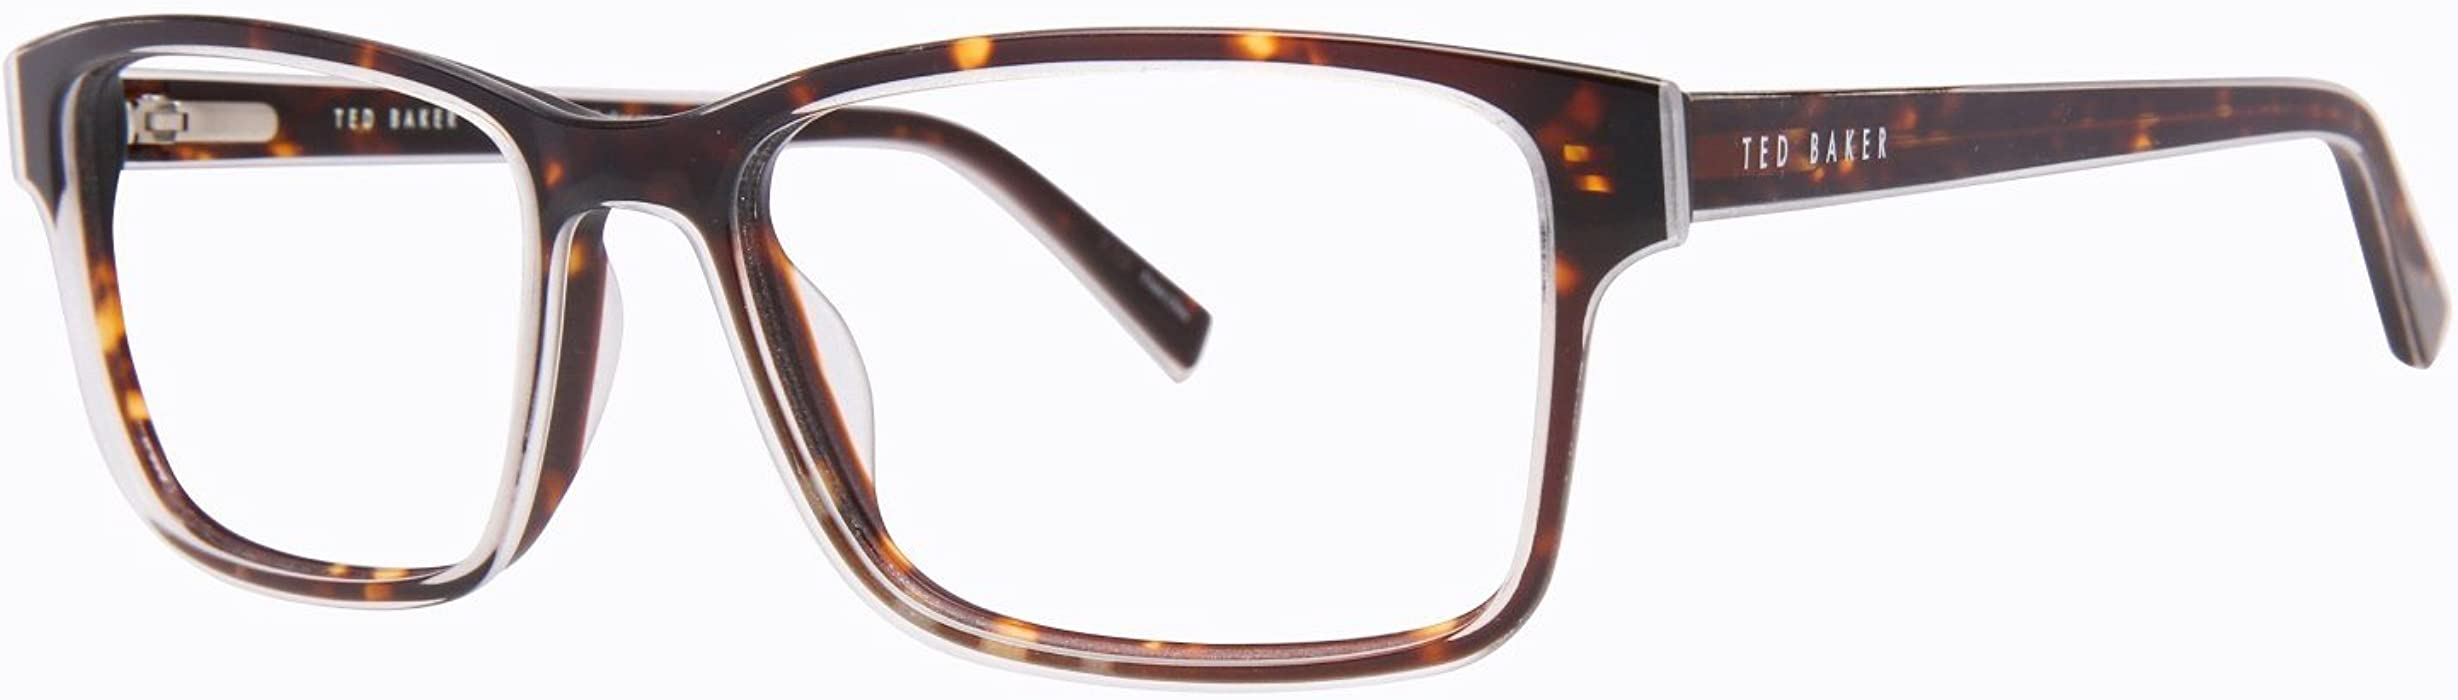 8b8afab480 Ted Baker B886 Mens Eyeglass Frames - Crystal Tortoise. Back. Double-tap to  zoom